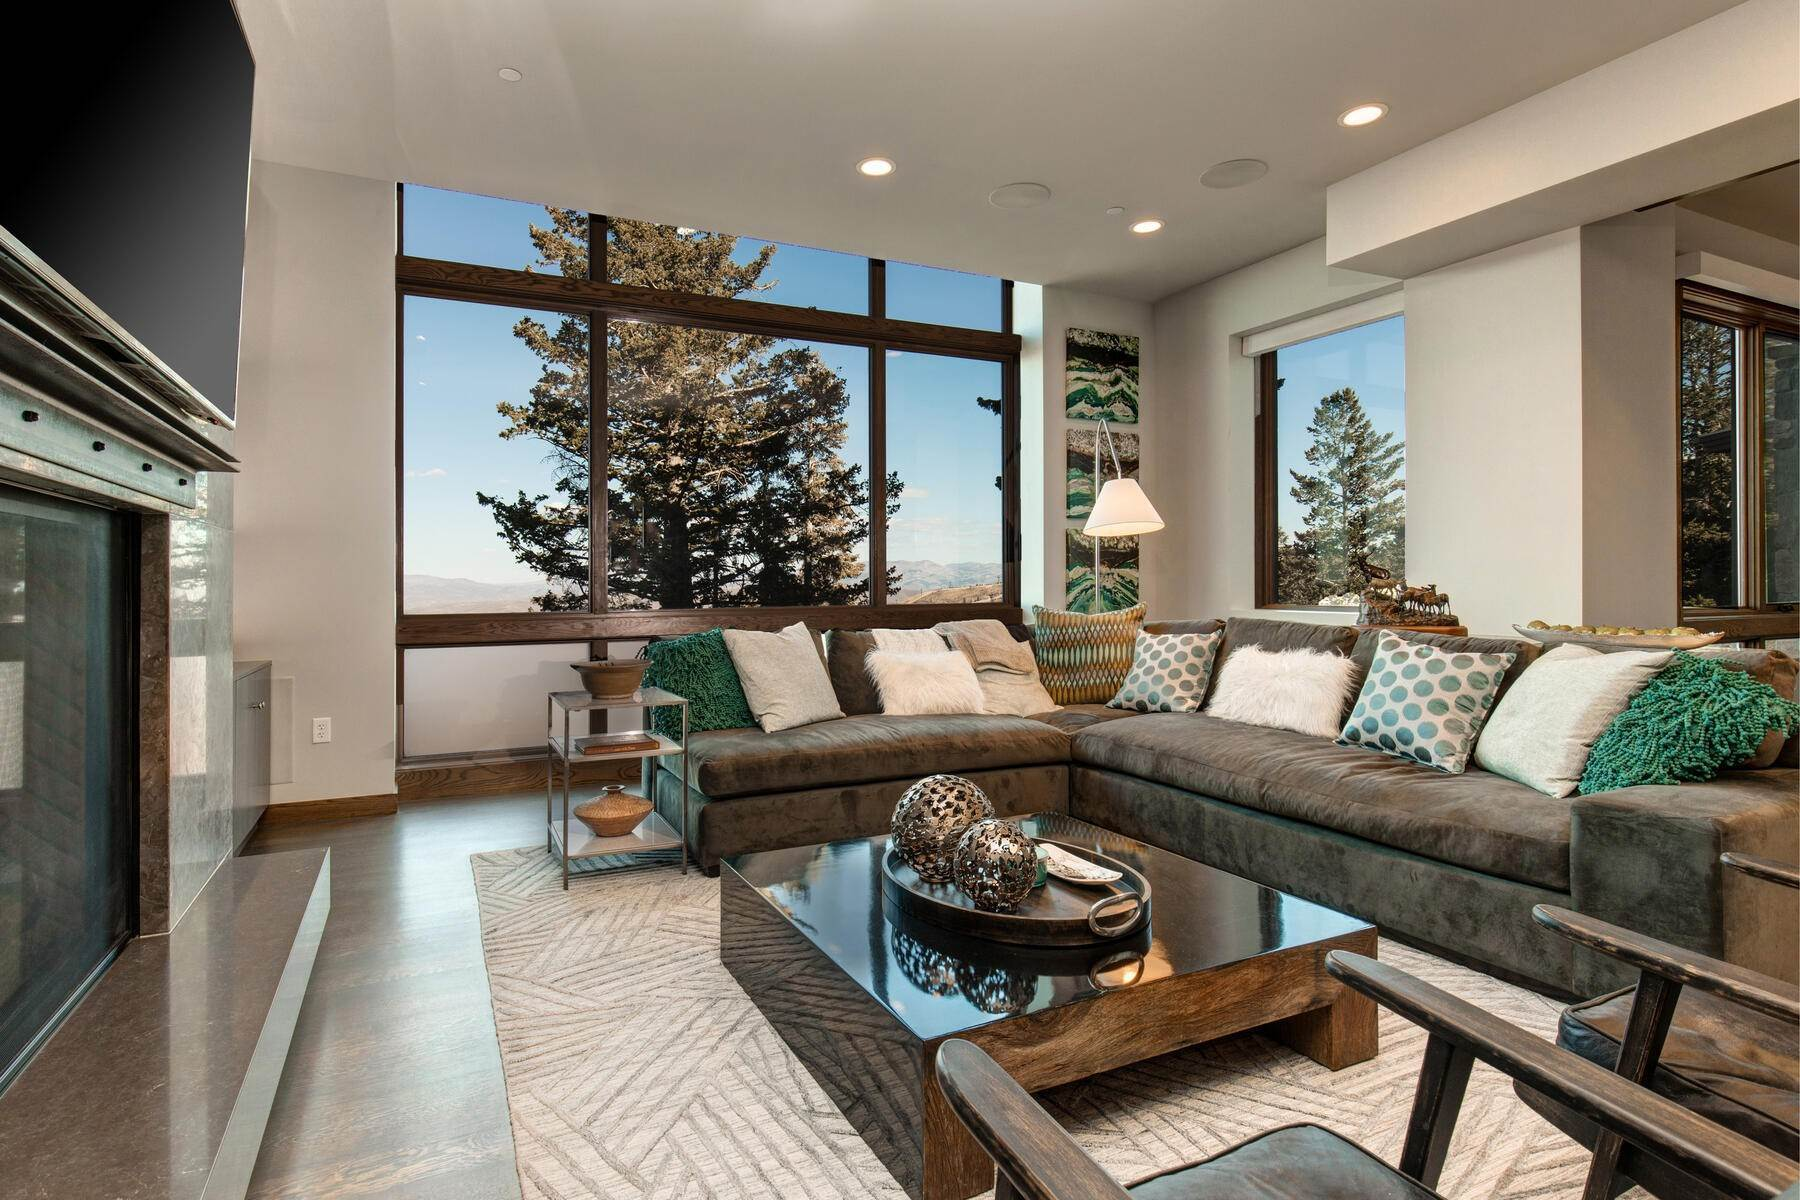 3. Condominiums for Sale at Ski-In Ski-Out Alpine Luxury Living at Stein Eriksen Residences 6702 Stein Circle #131 Park City, Utah 84060 United States